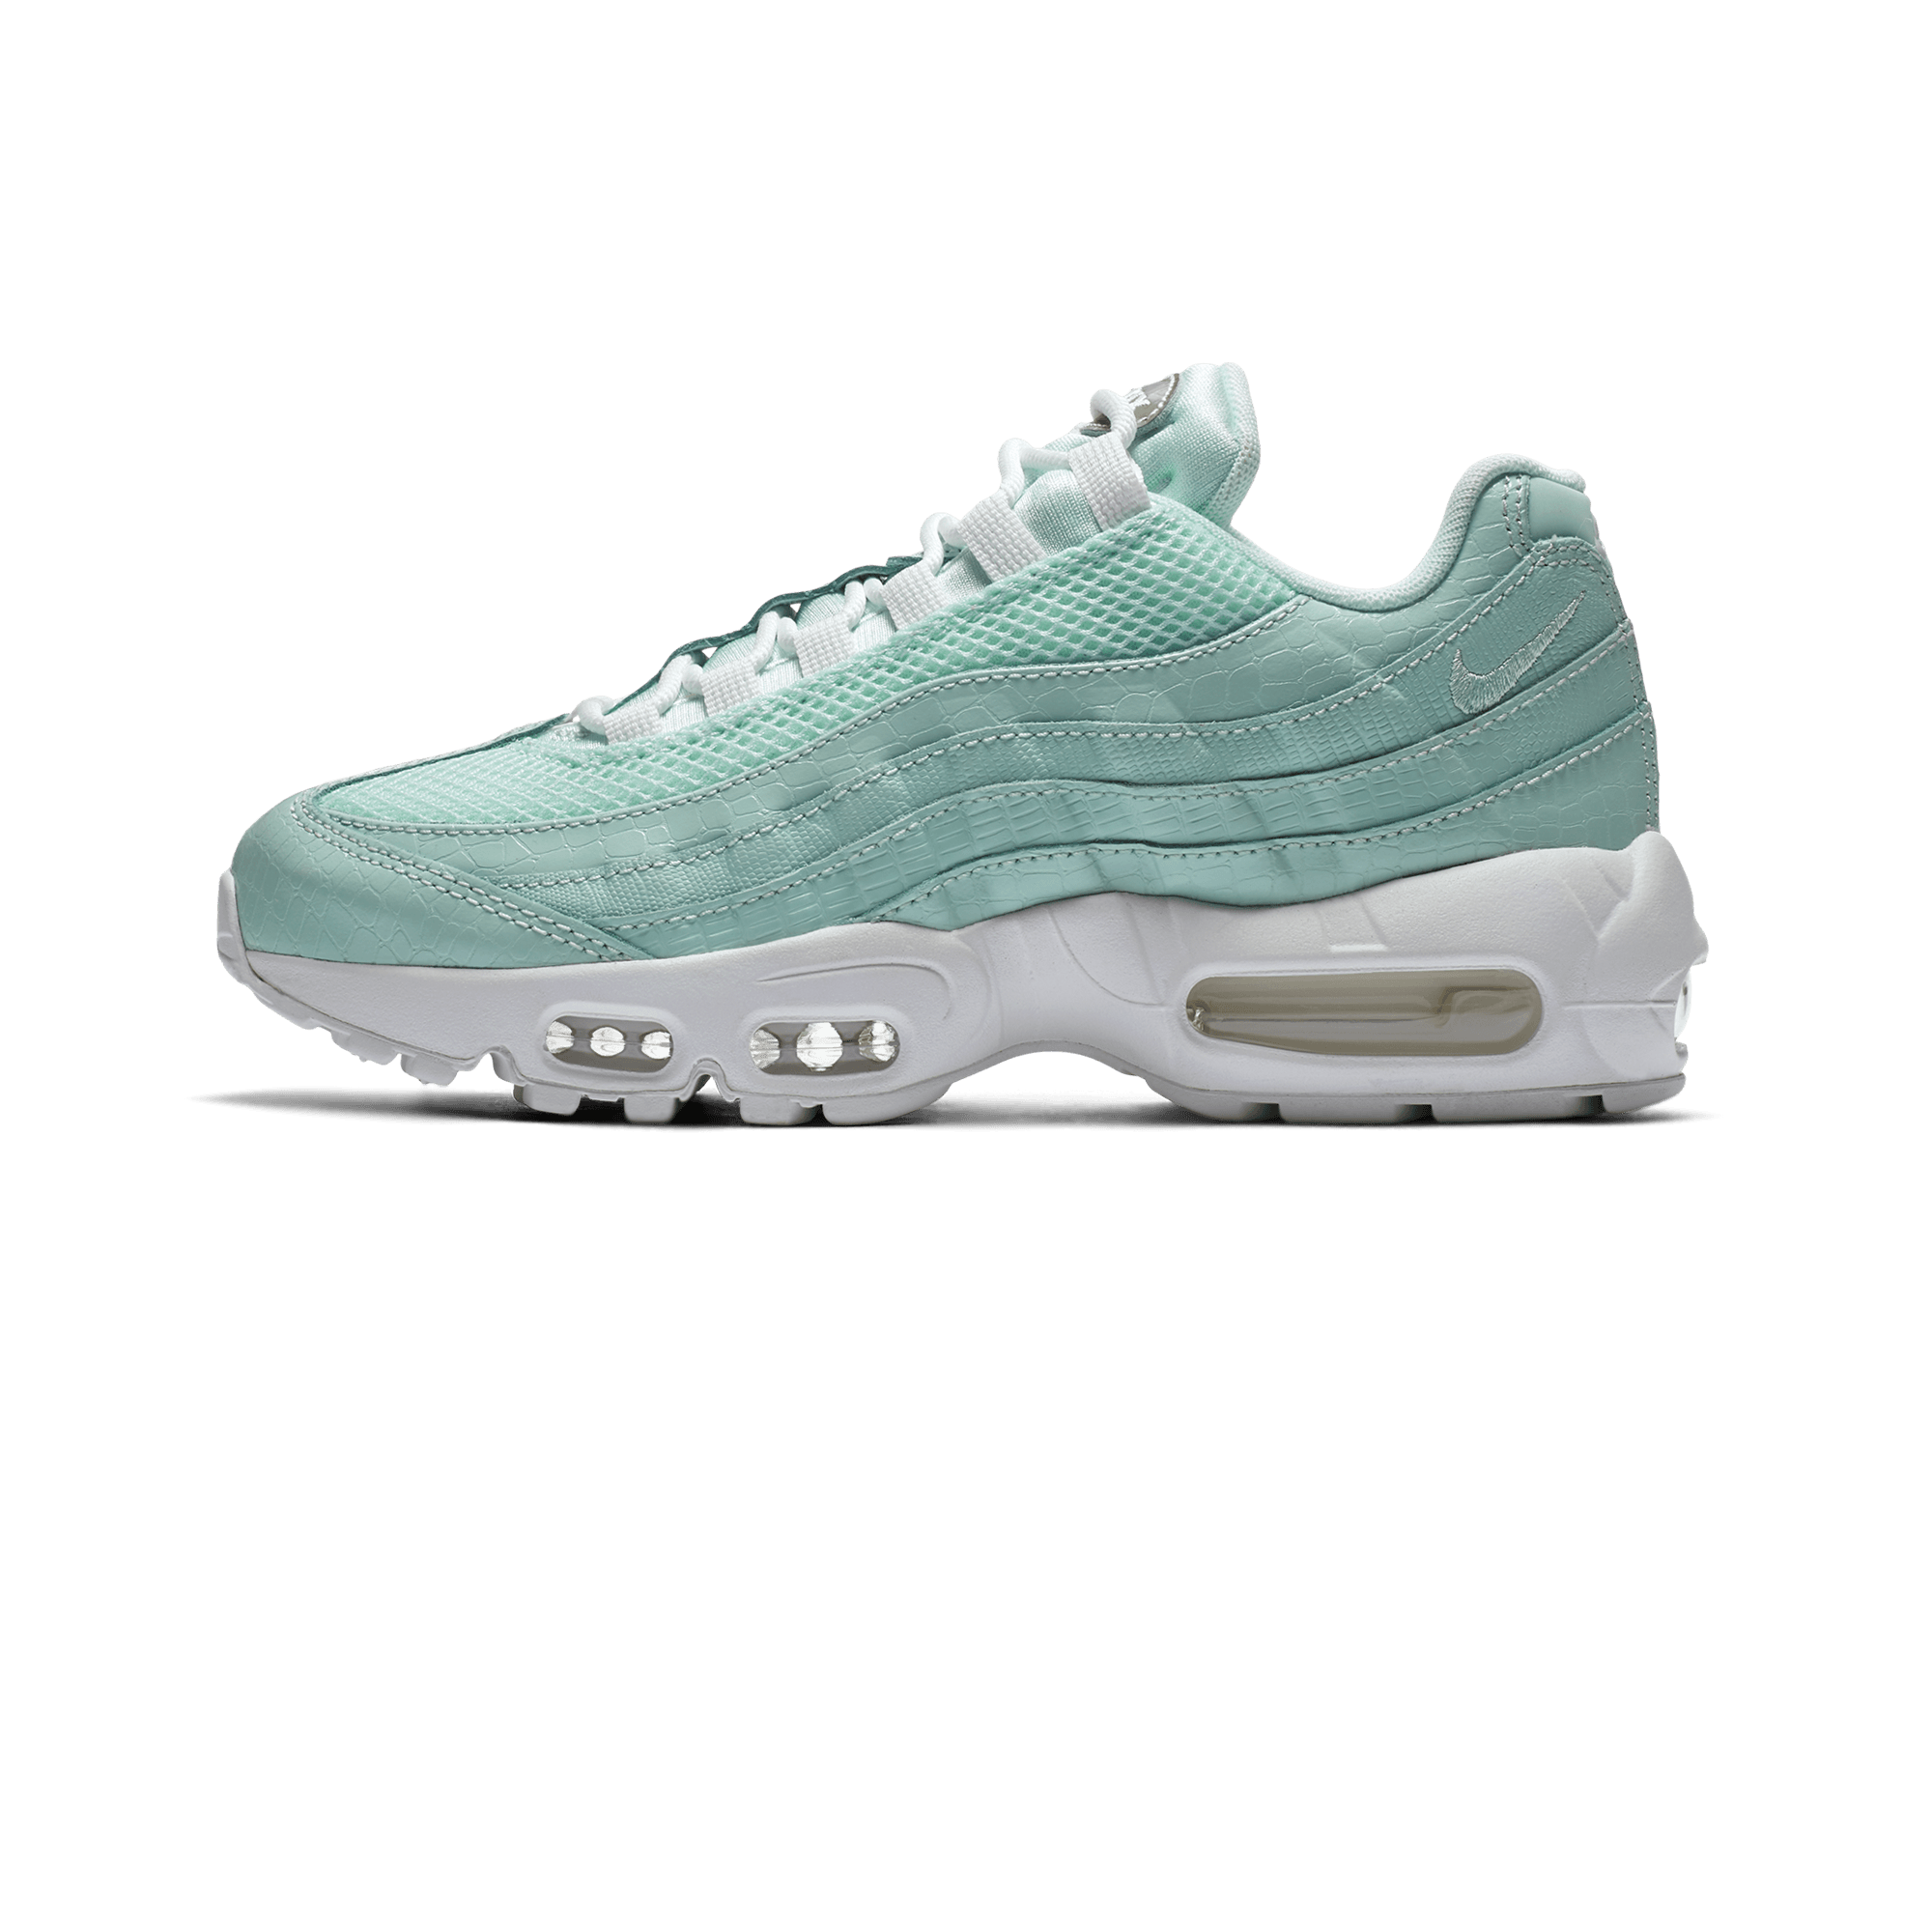 superior quality e8621 775f3 Nike Air Max 95 PRM W igloo / summit white / clay green - Woman |  Holypopstore.com